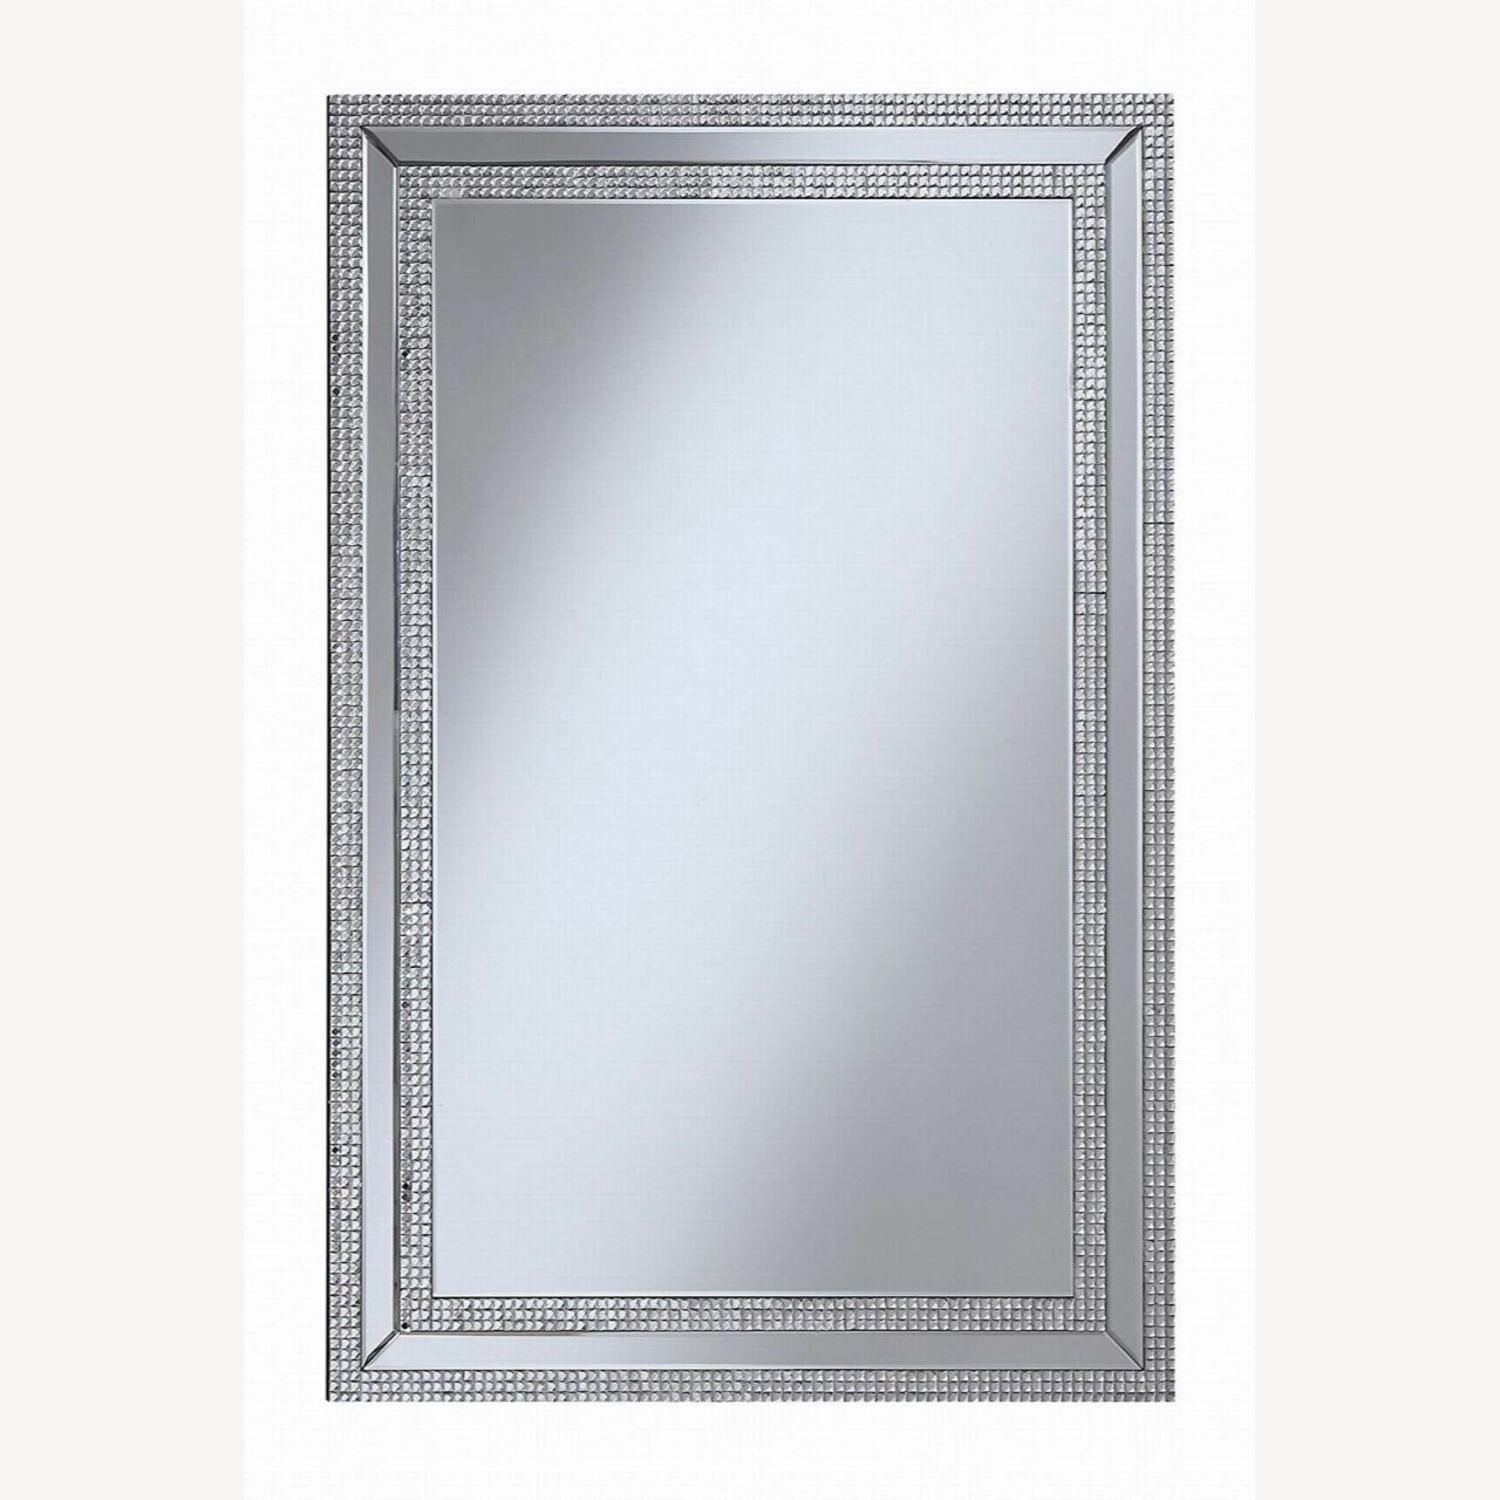 Wall Mirror In Clear Finish W/ Rows of Jewels - image-0